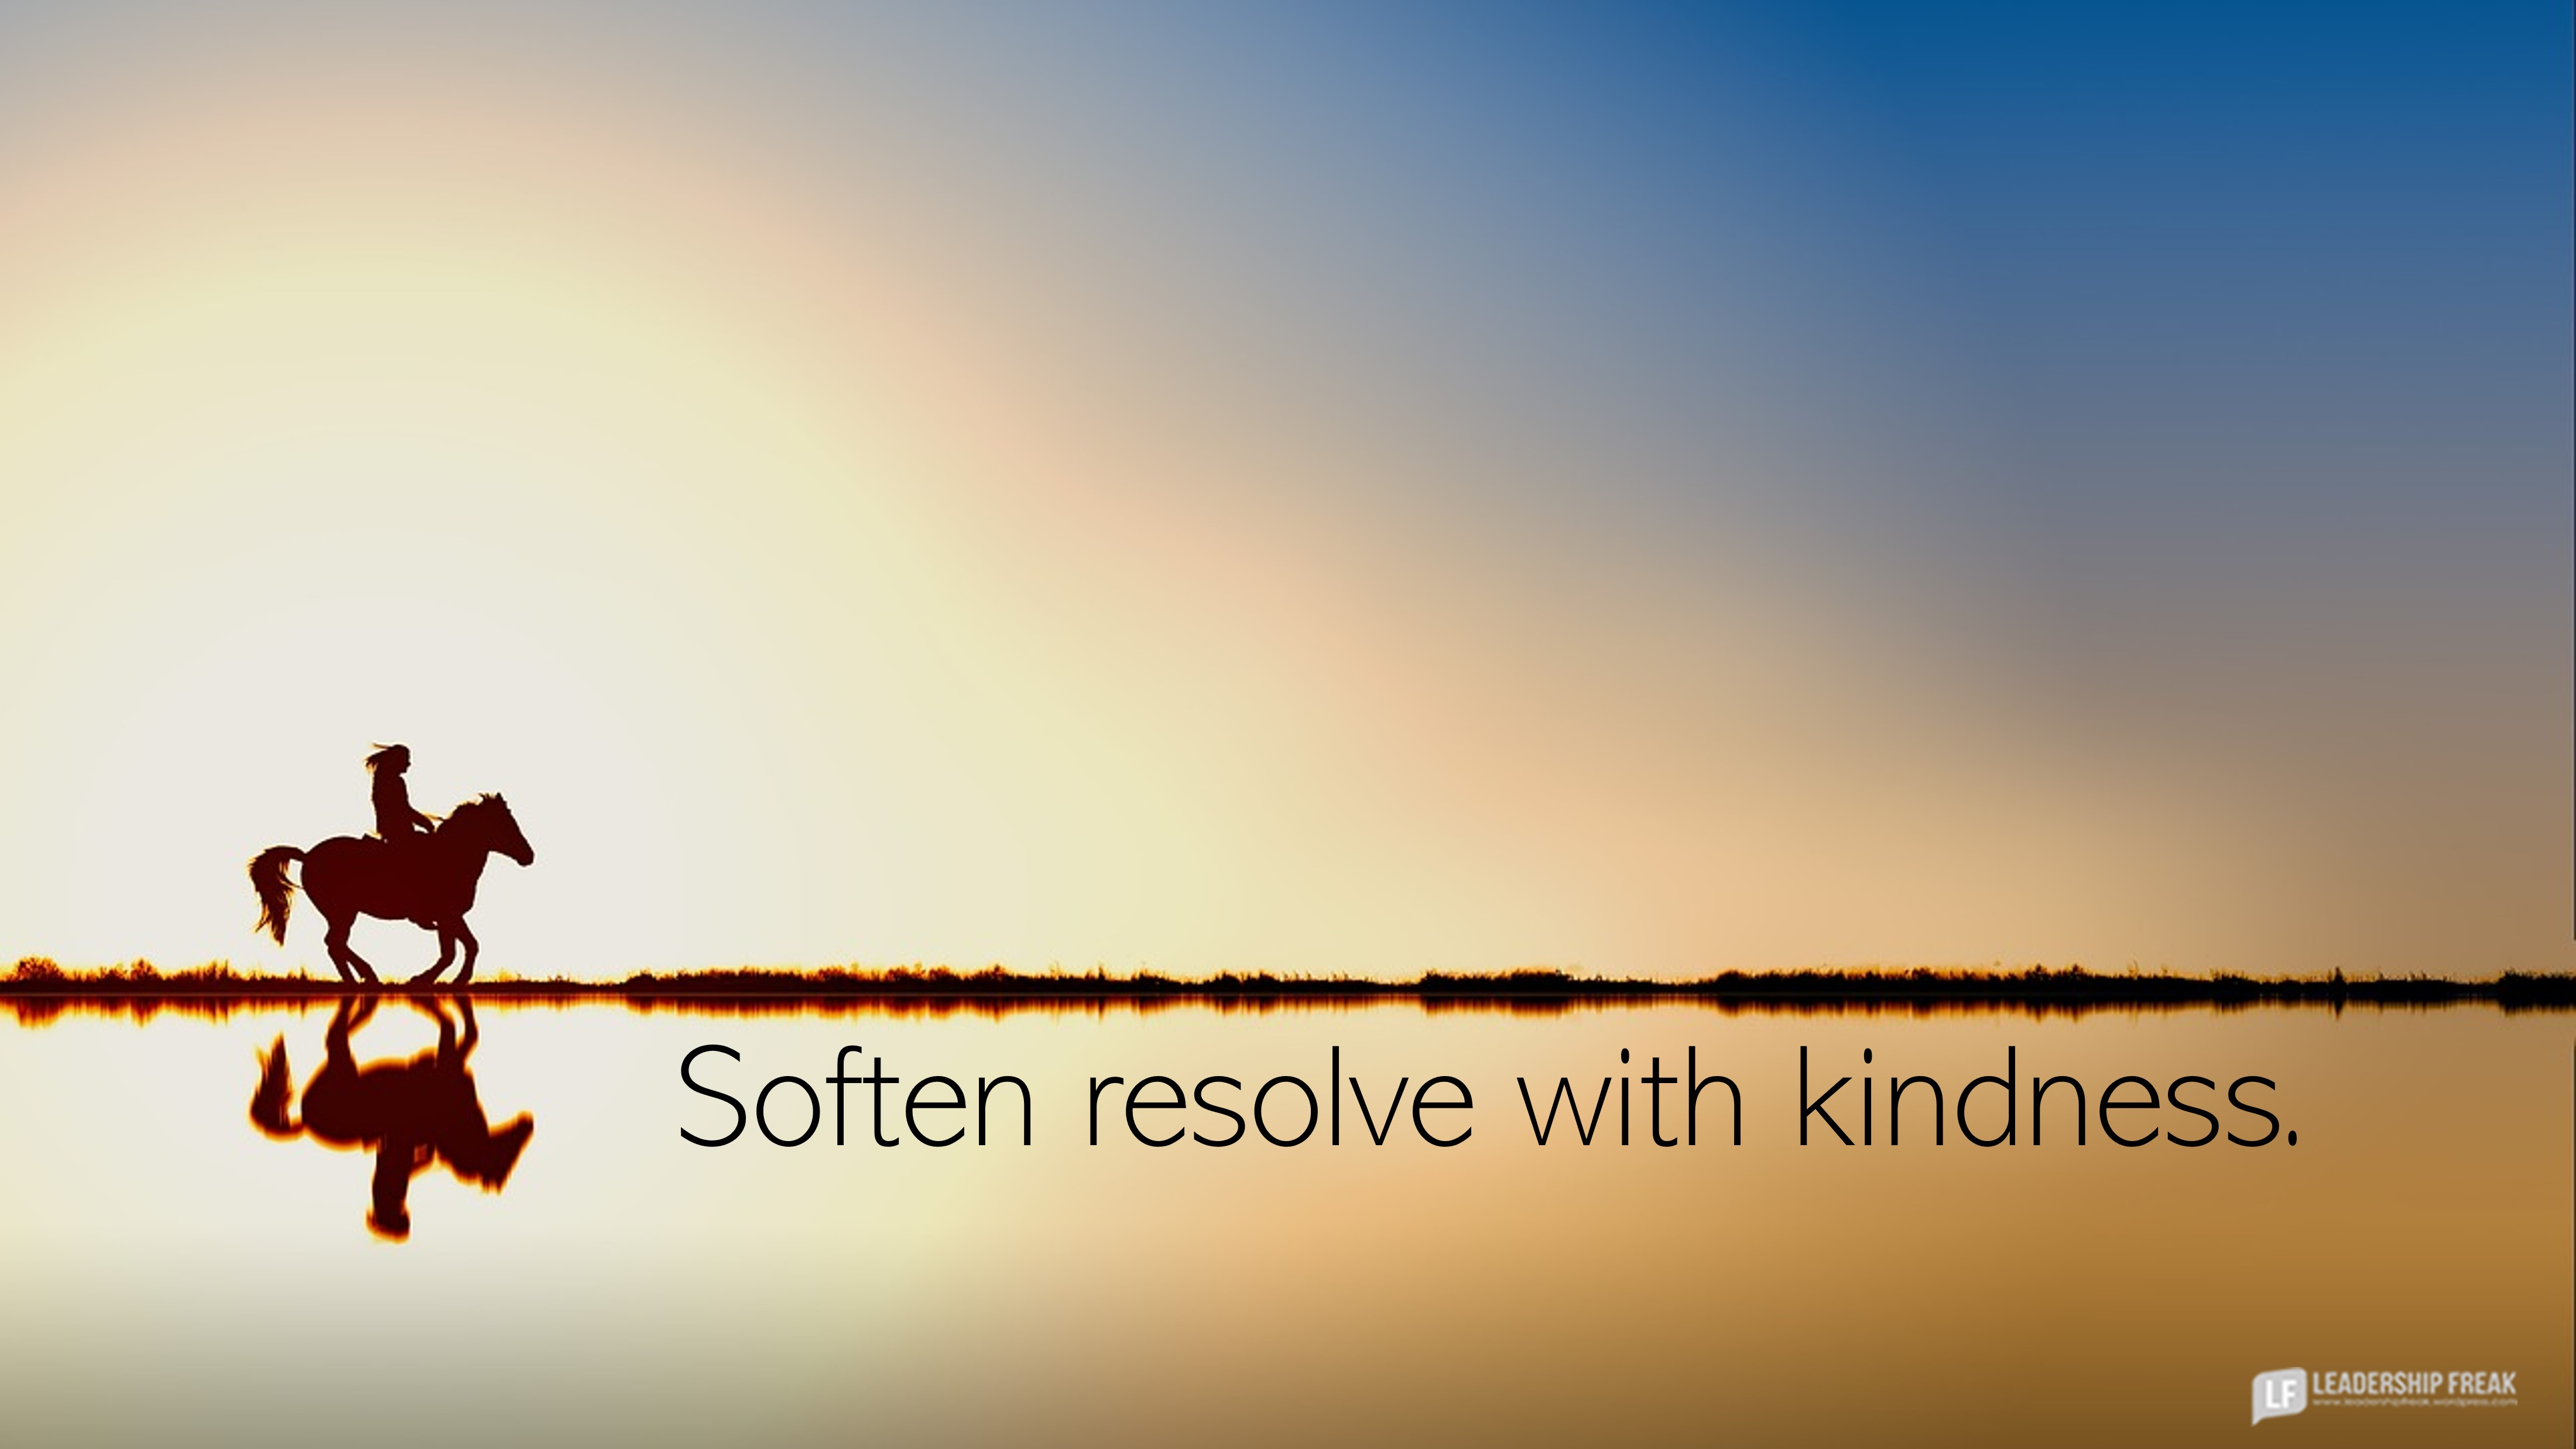 Horse running along the horizon.  Soften resolve with kindness.